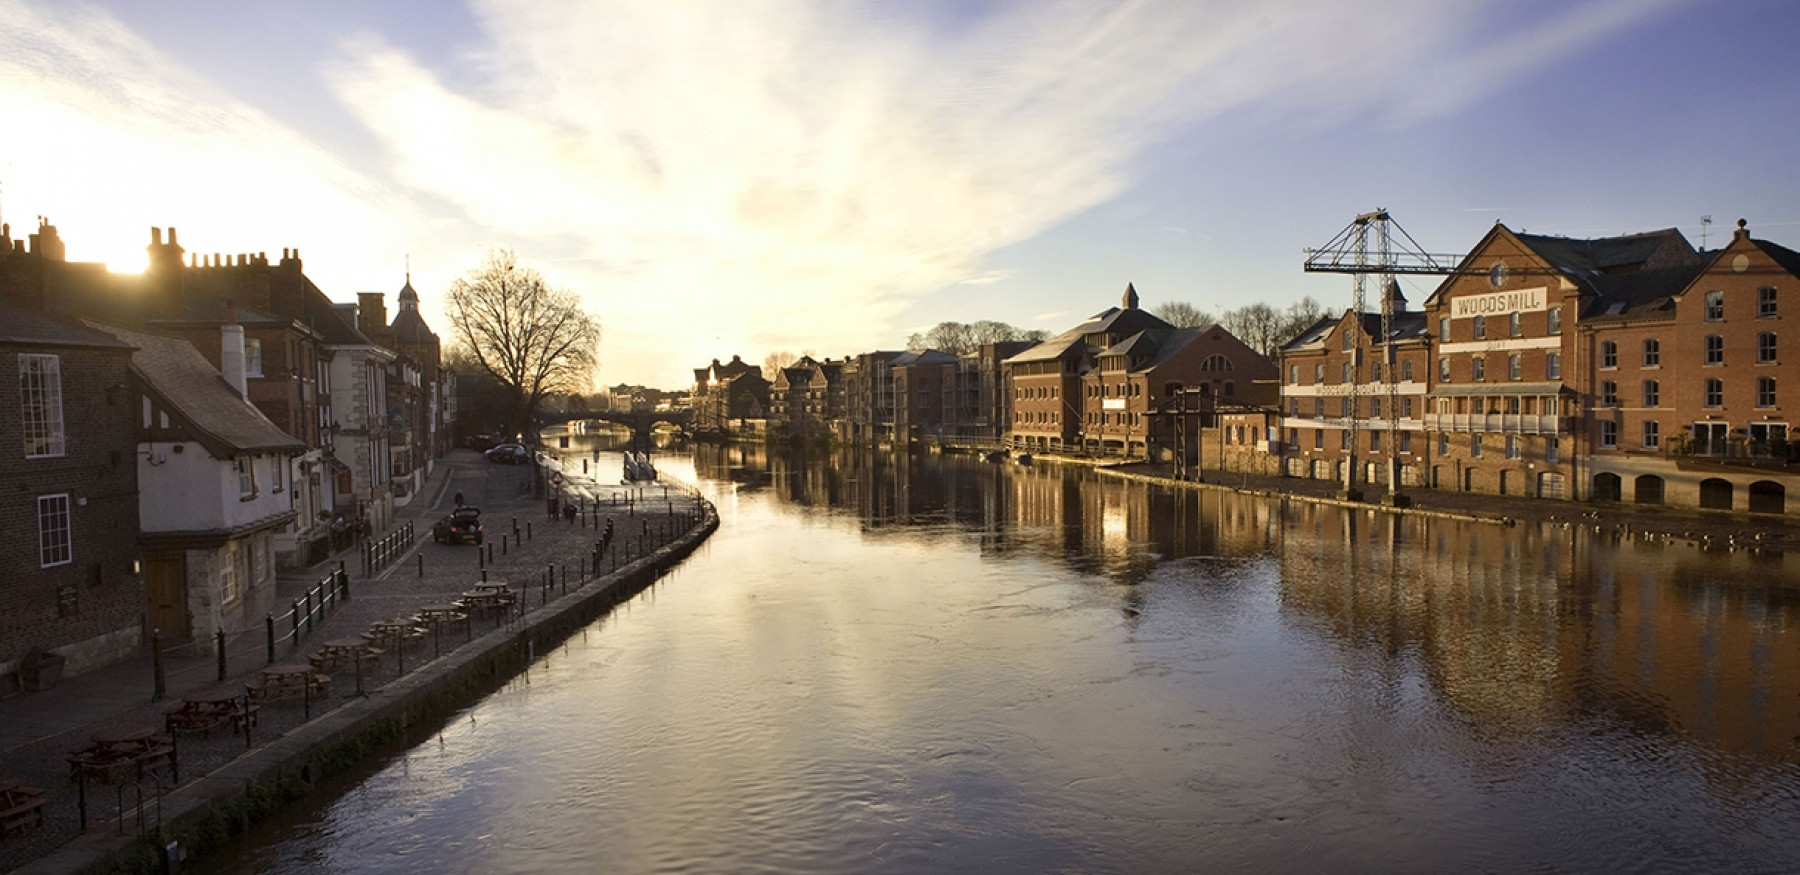 River Ouse 1721252208